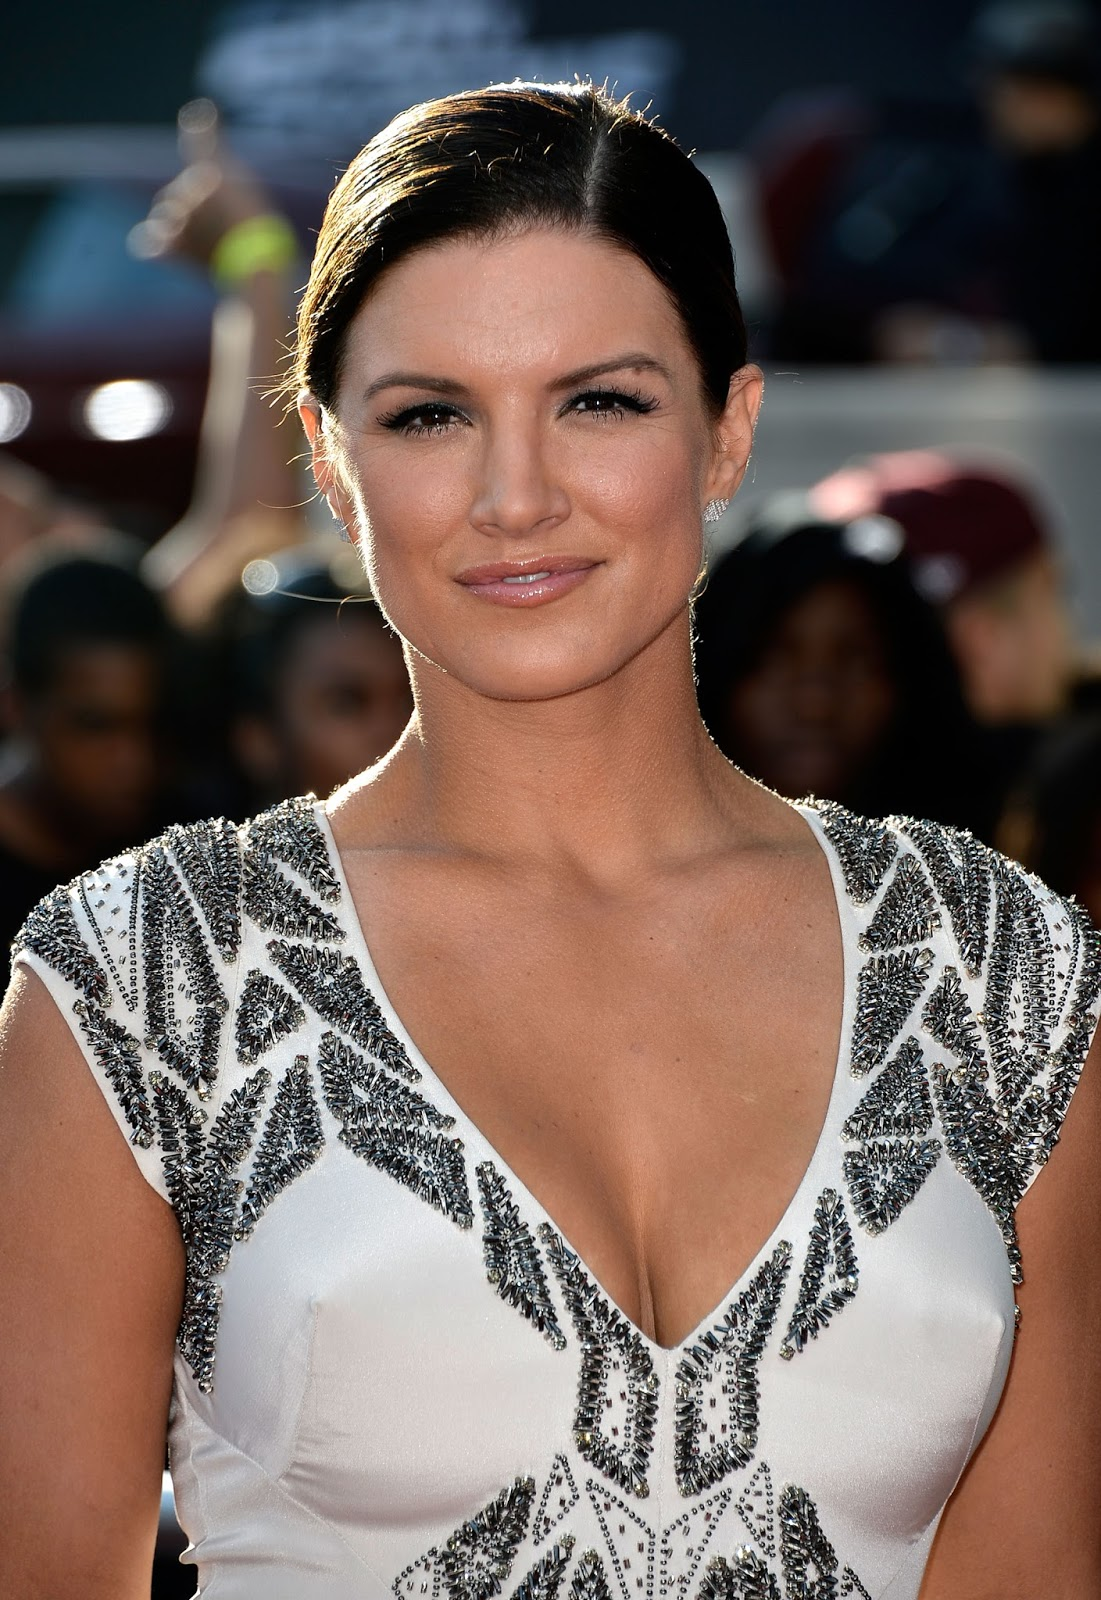 Gina Carano Hot Pictures Hd Sports Updates